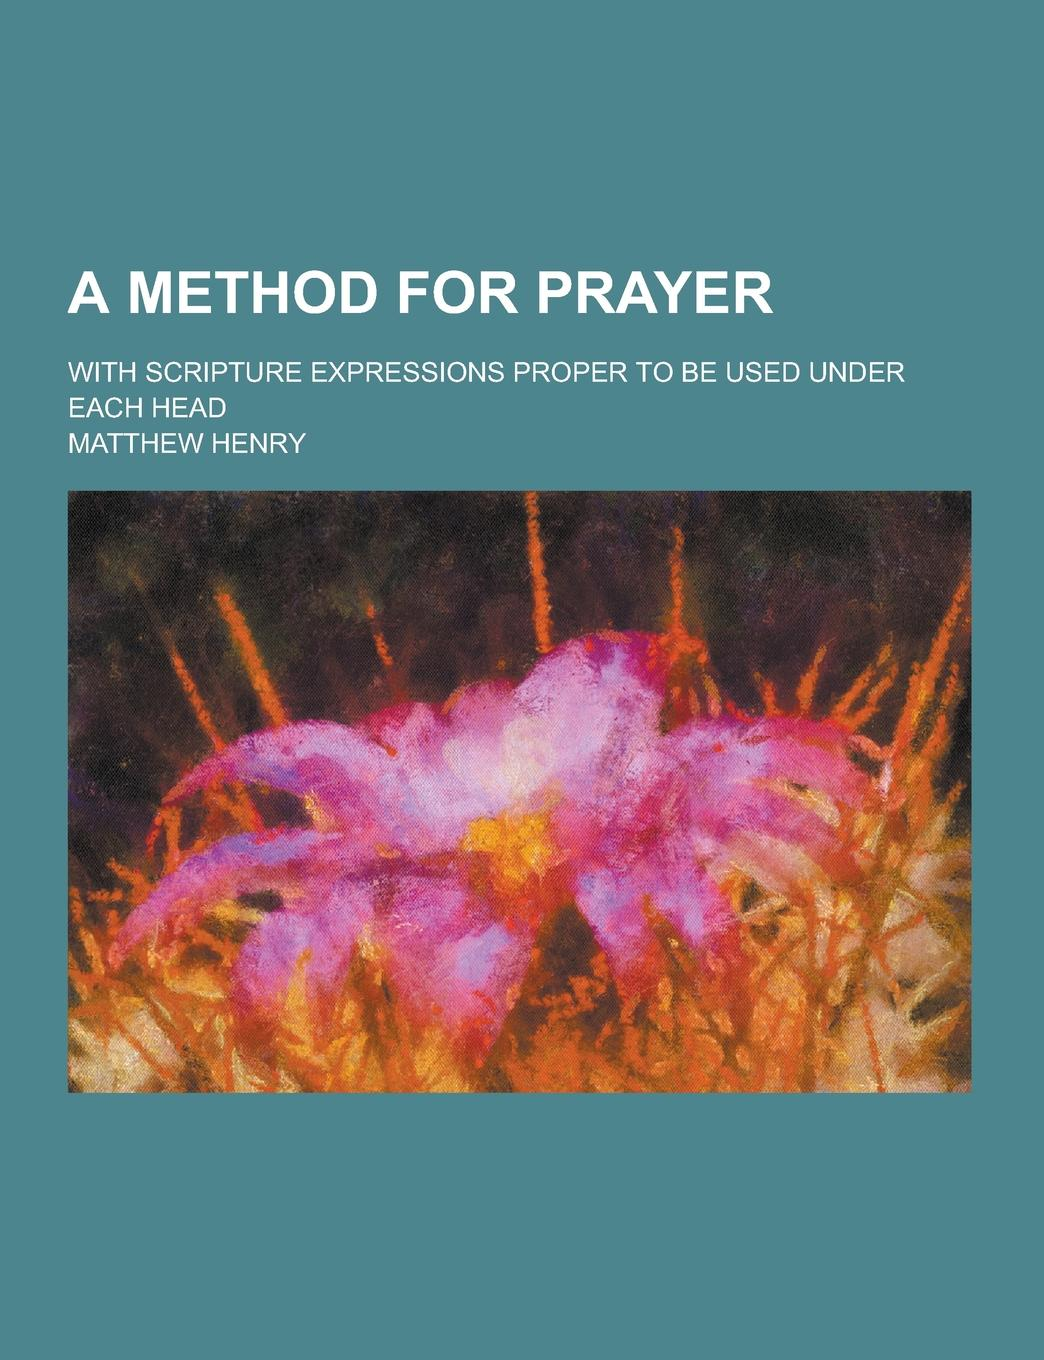 Matthew Henry A Method for Prayer; With Scripture Expressions Proper to Be Used Under Each Head jd mcpherson jd mcpherson let the good times roll